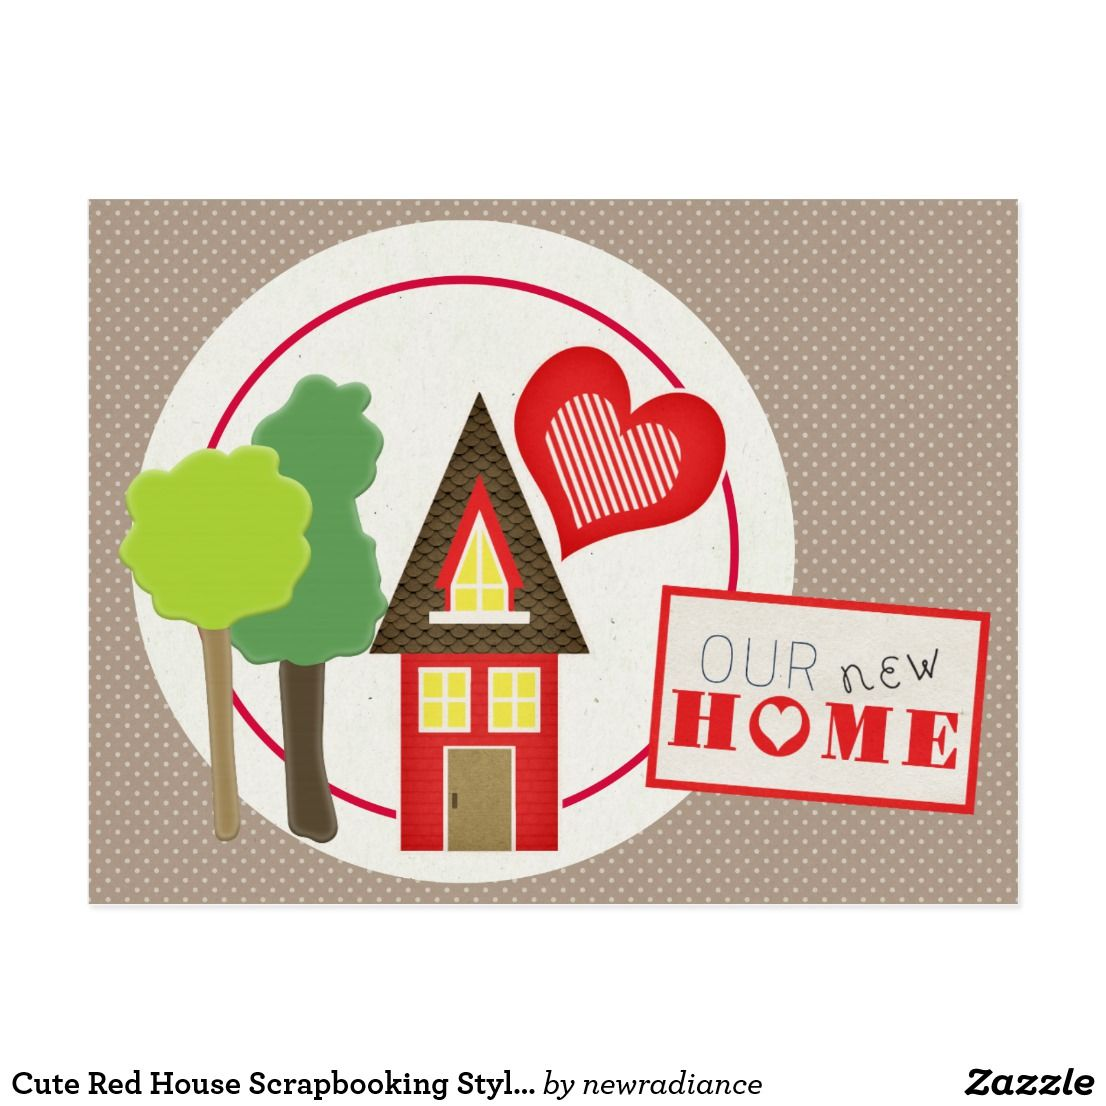 Cute red house scrapbooking style address change